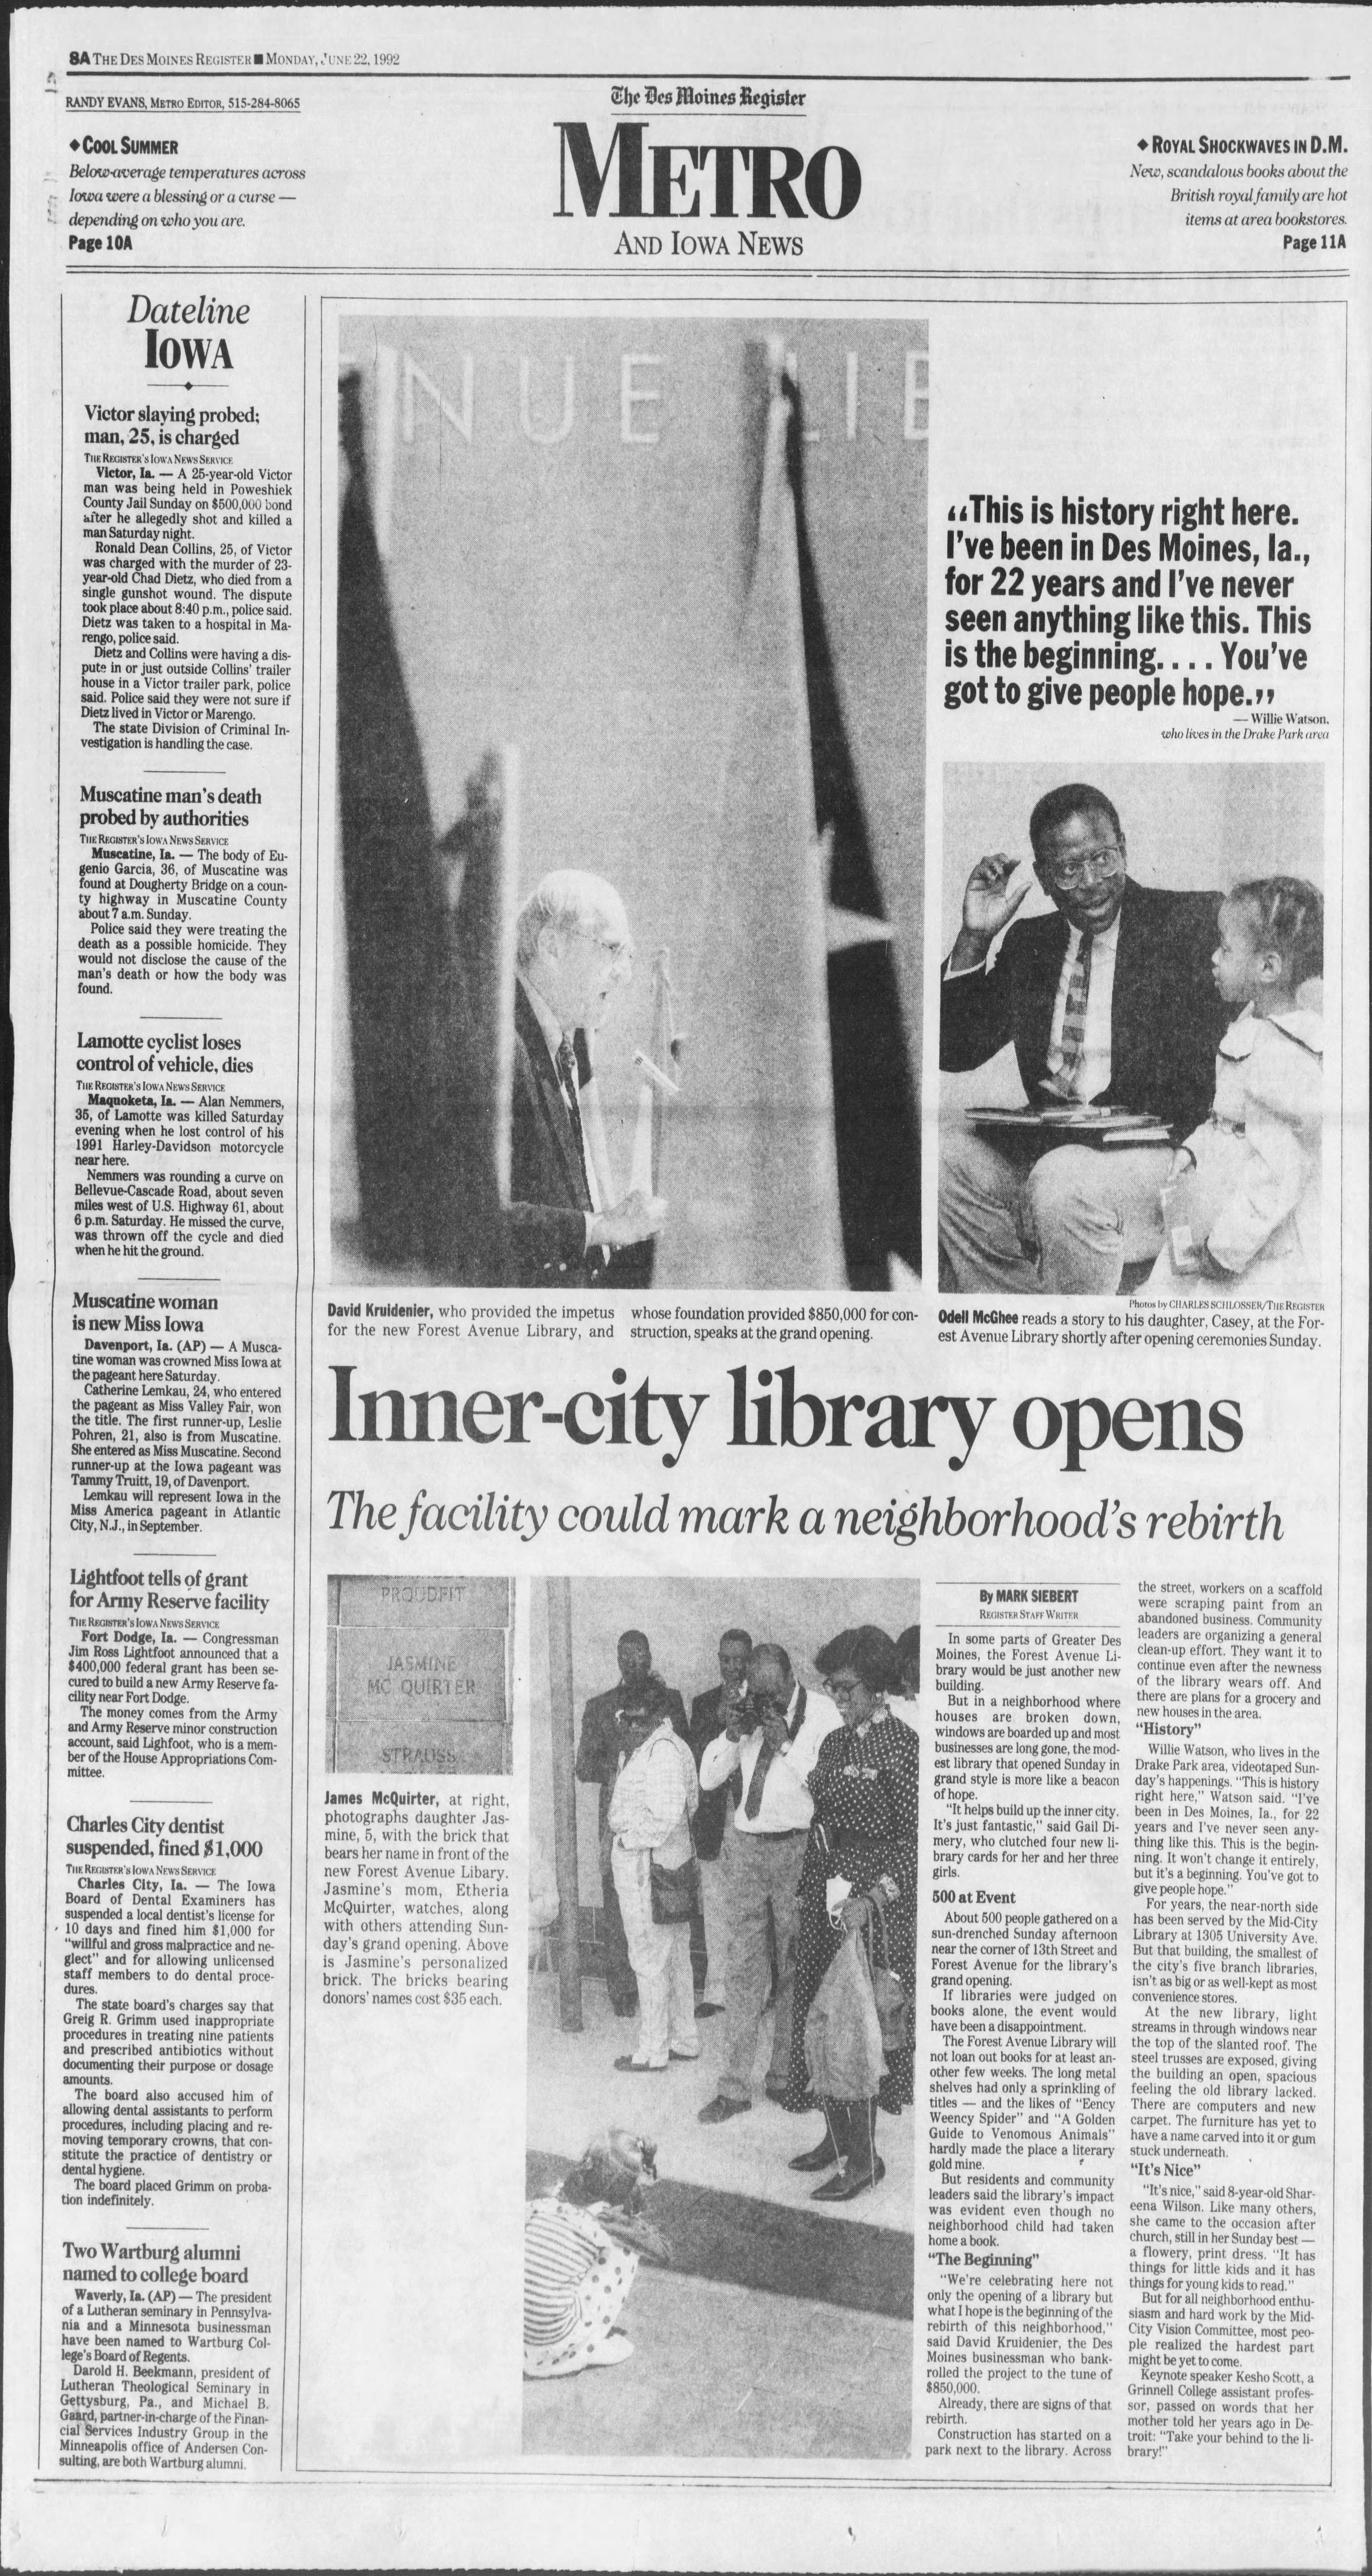 The Des Moines Register metro section on June 22, 1992, the day after the grand opening of Forest Avenue Library. Its opening drew hundreds of people. The Forest Avenue Library was a result of efforts led by the community, notably Evelyn K. Davis and the Mid-City Vision Coalition.